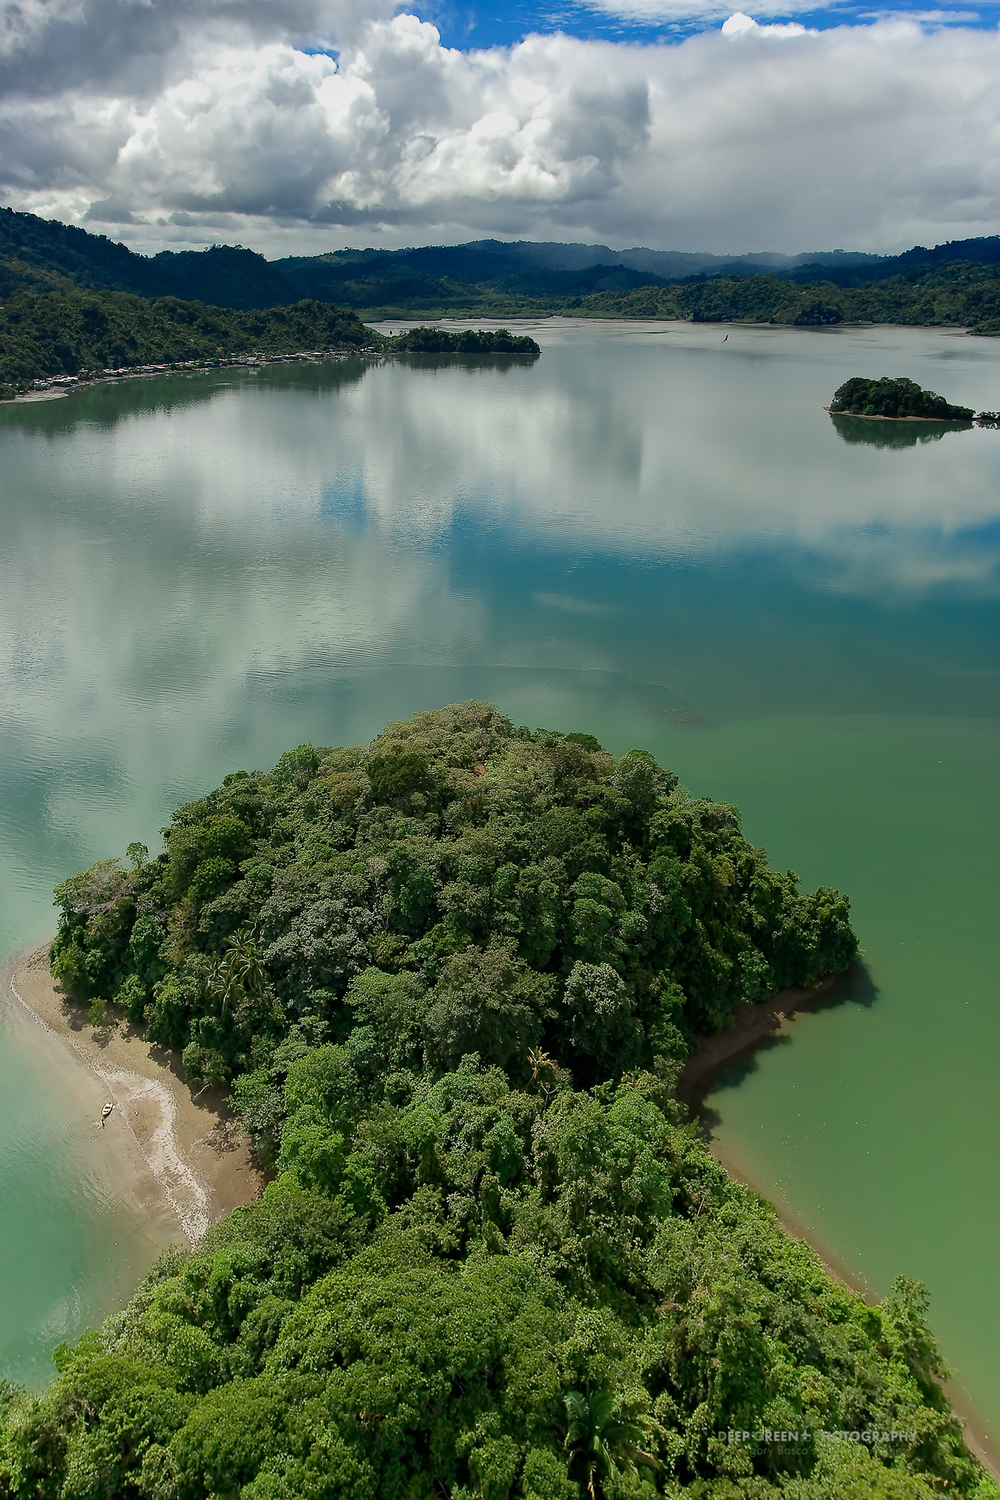 Golfo Dulce Rainforest, shot from a helicopter